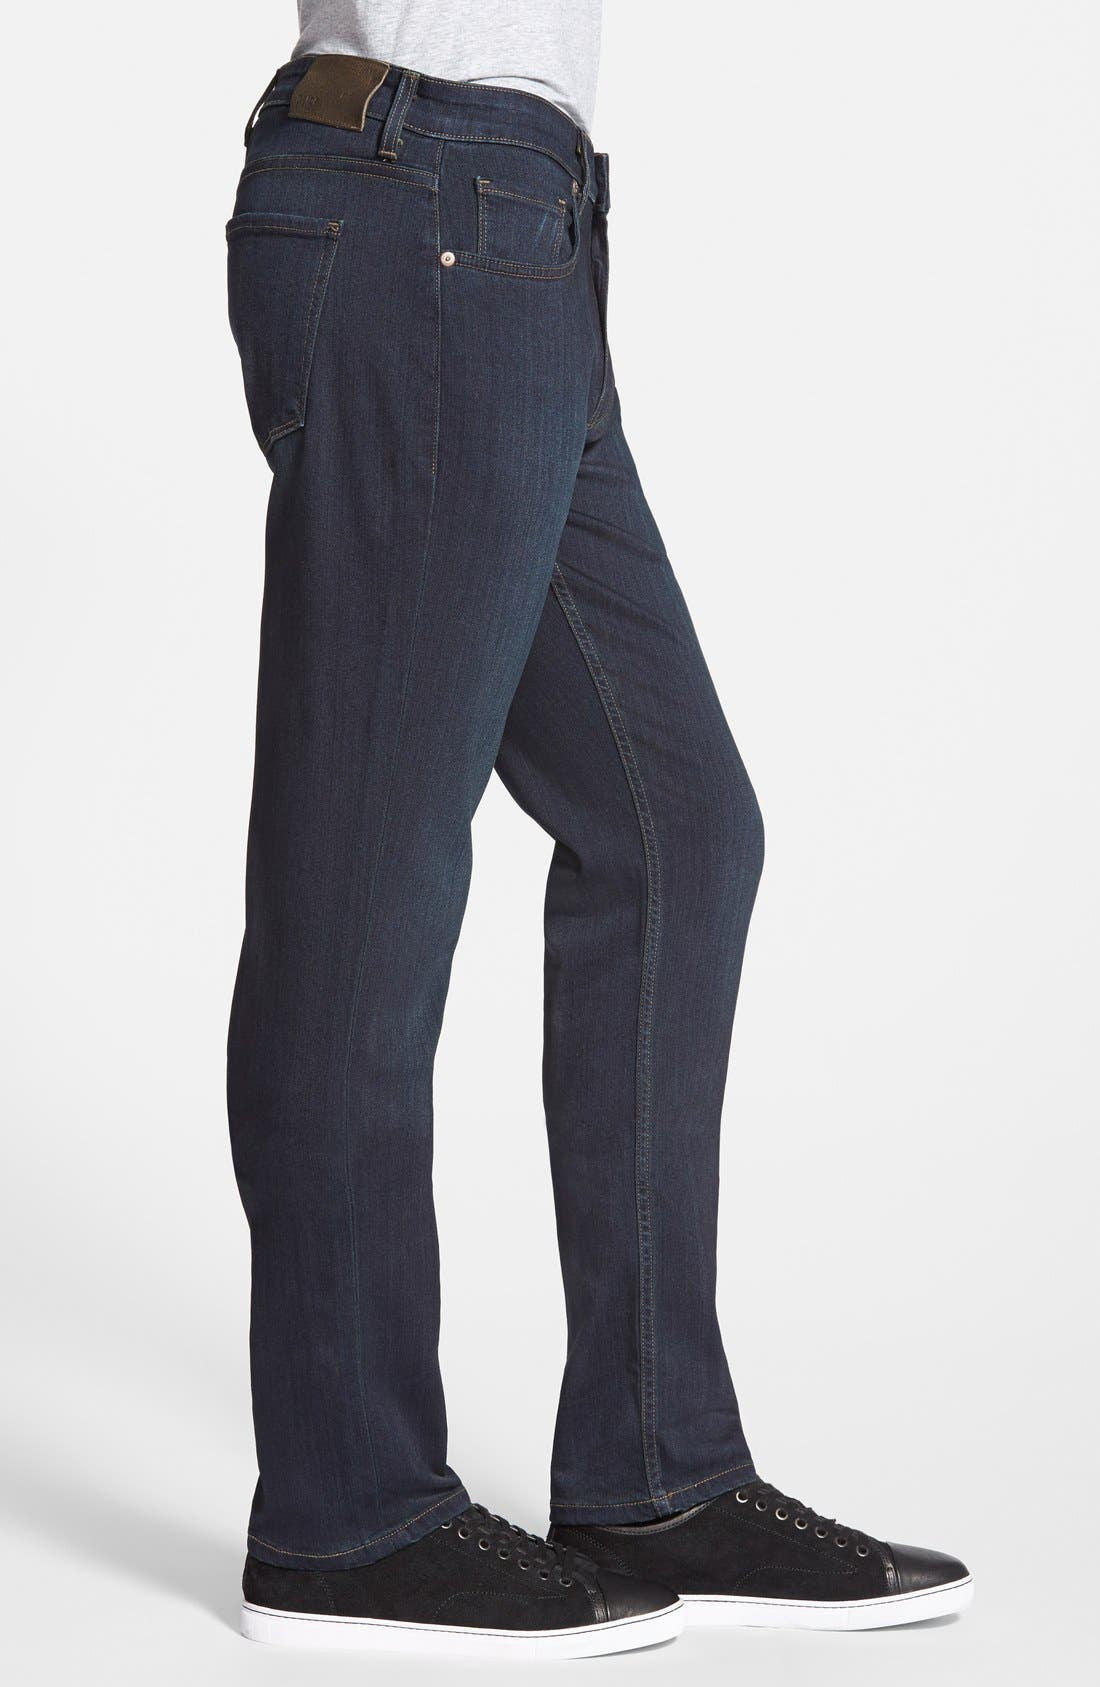 PAIGE,                             Transcend - Federal Slim Straight Leg Jeans,                             Alternate thumbnail 5, color,                             CELLAR